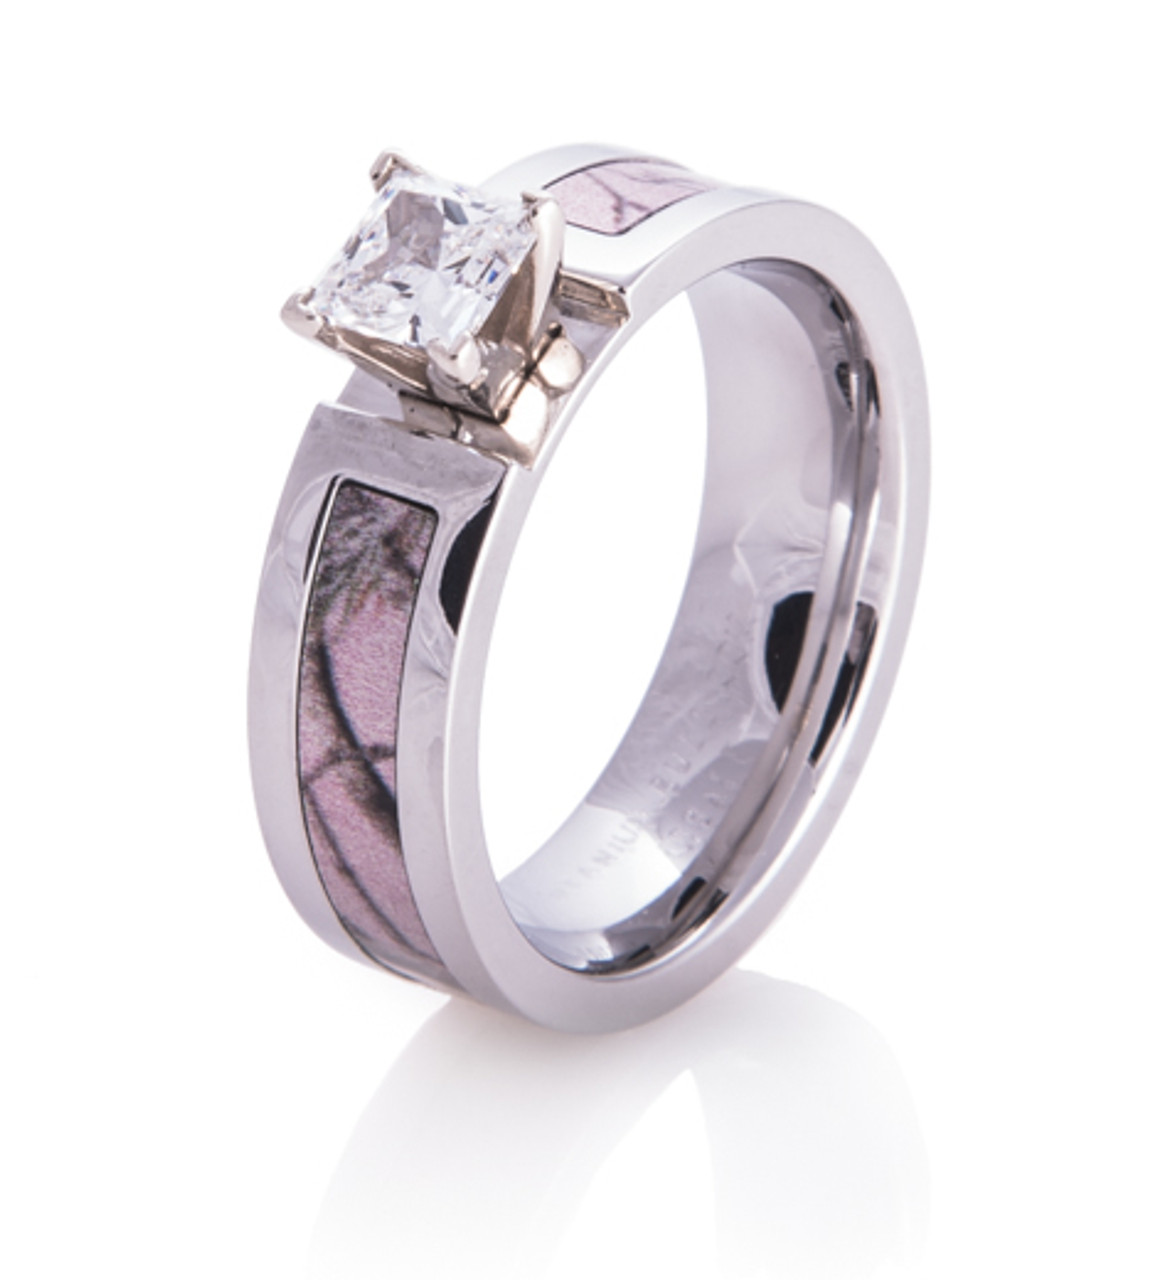 Realtree AP Pink Camo Engagement Ring TitaniumBuzz